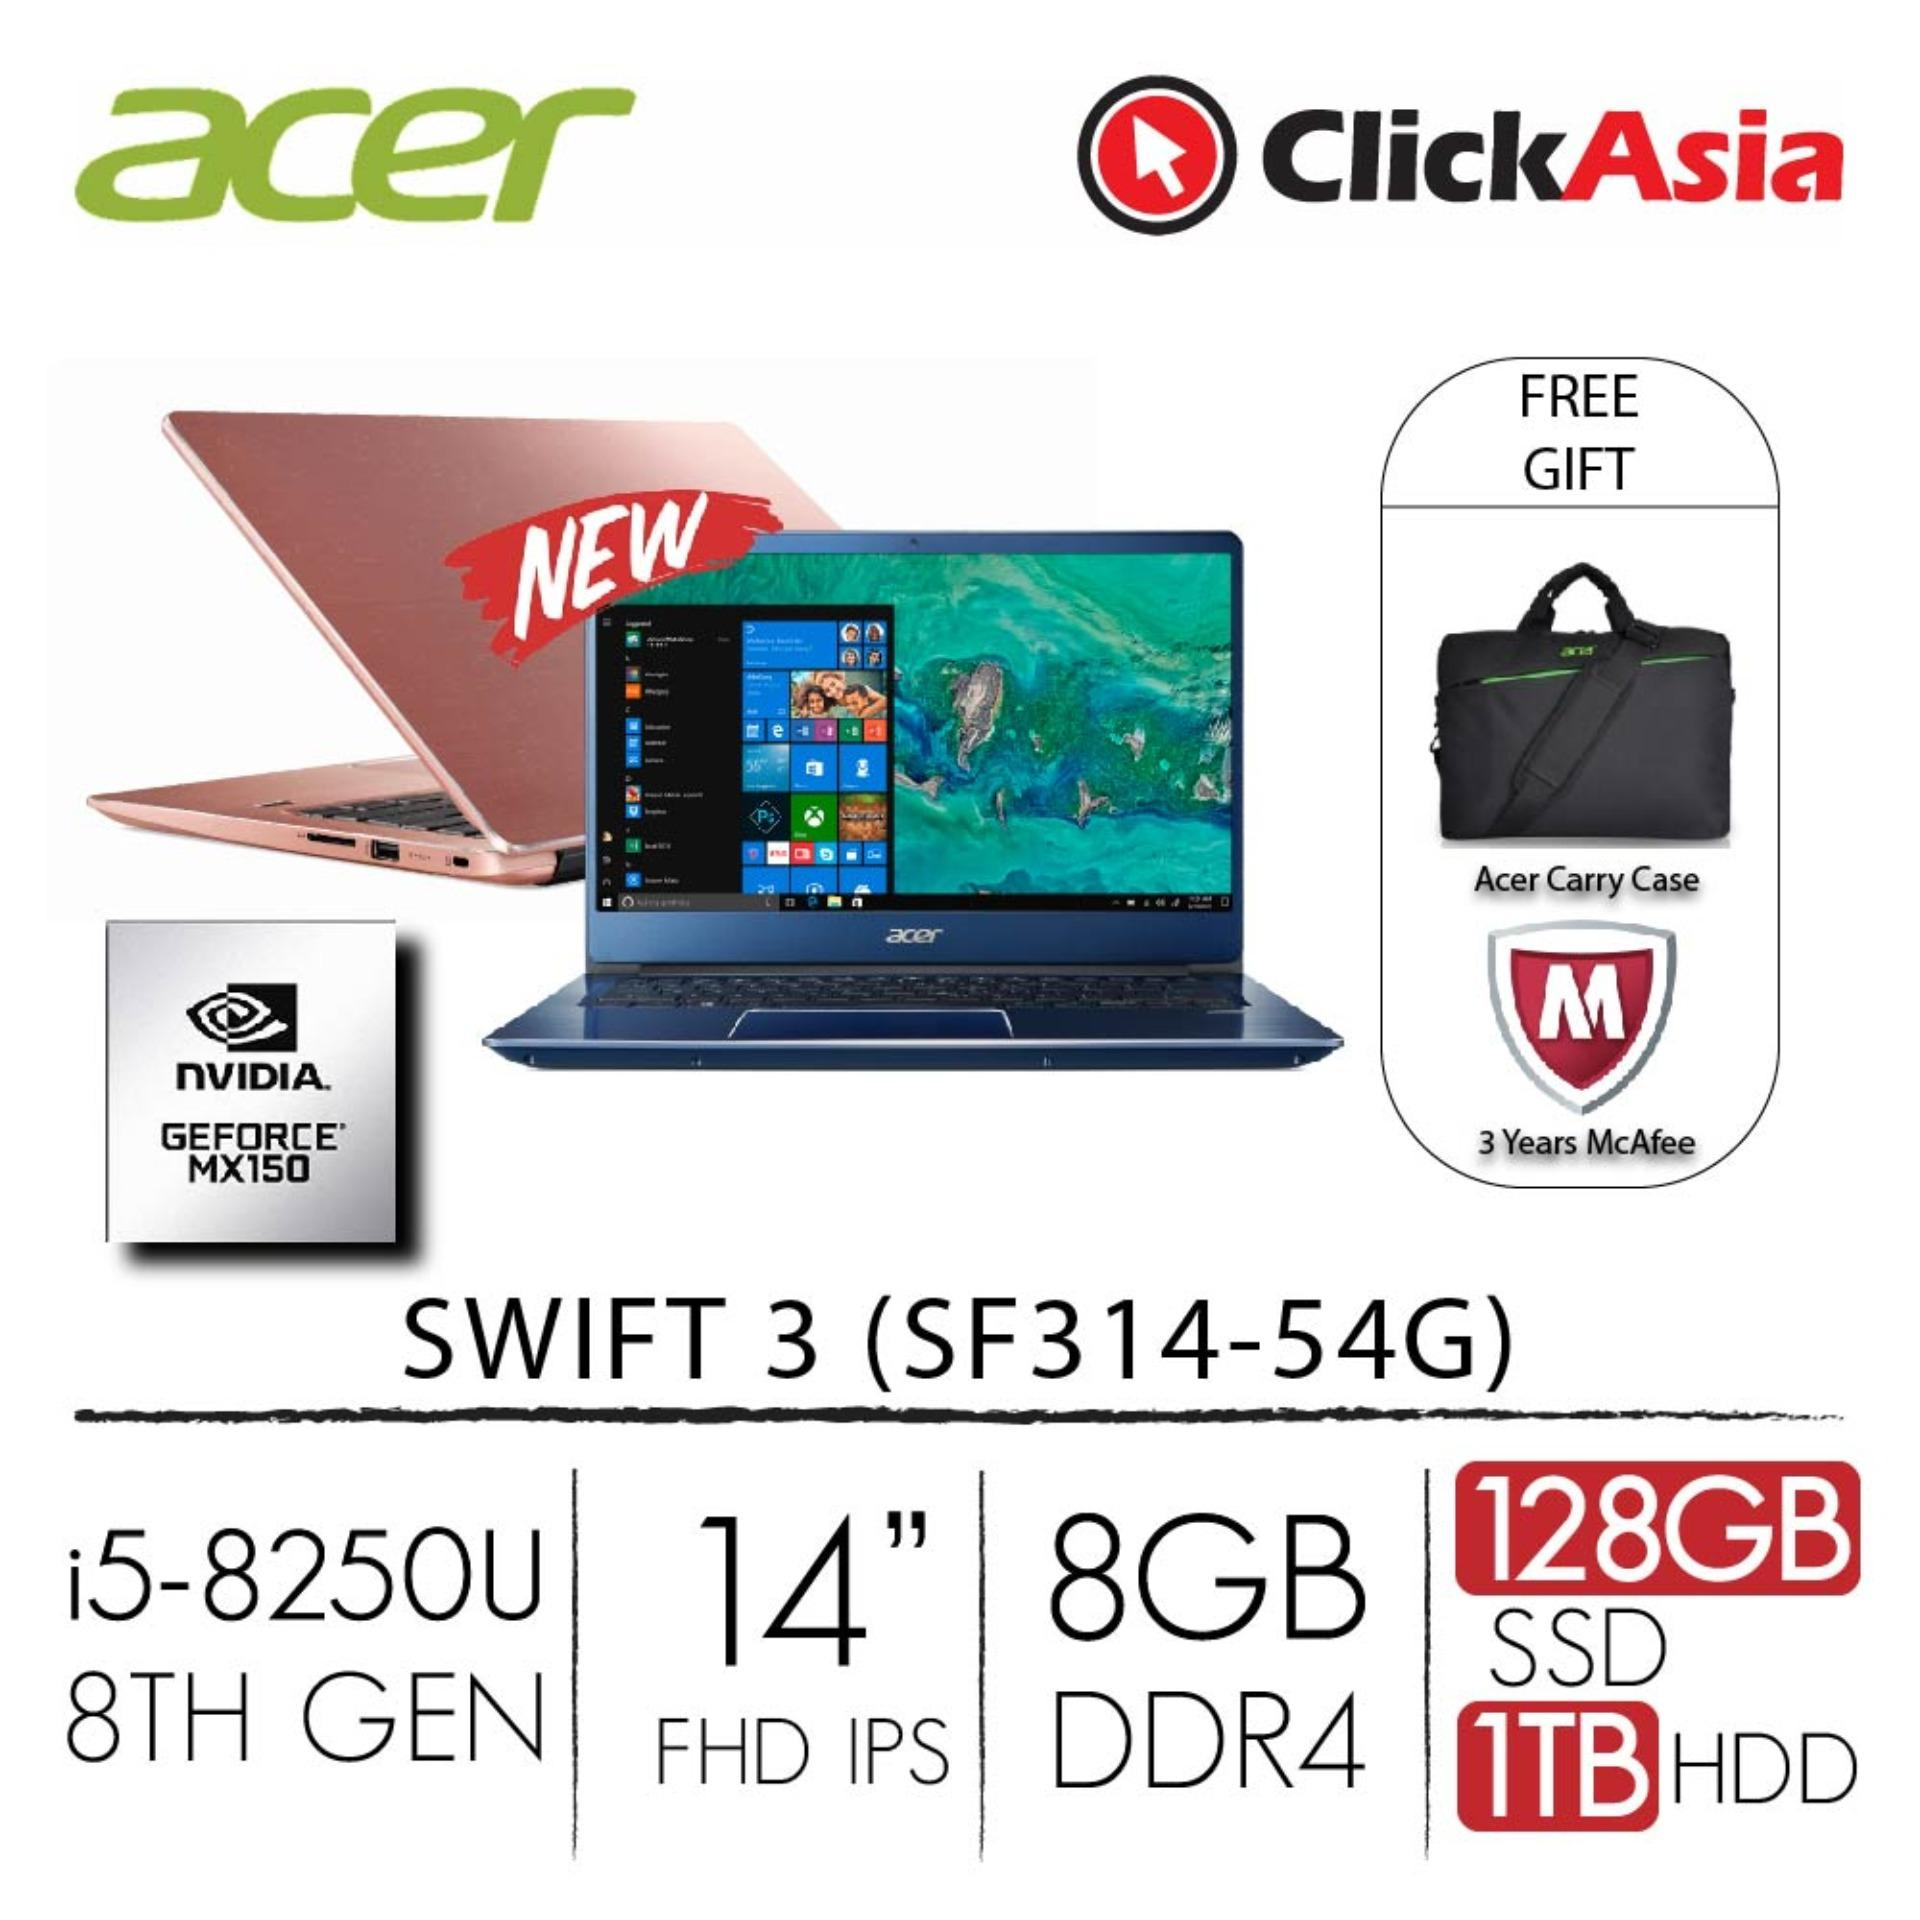 Acer Swift 3 (SF314-54G-5281) – 14″ FHD/i5-8250U/2*4GB DDR4/128GB SSD+1TB HDD/Nvidia MX150/W10 (Blue)